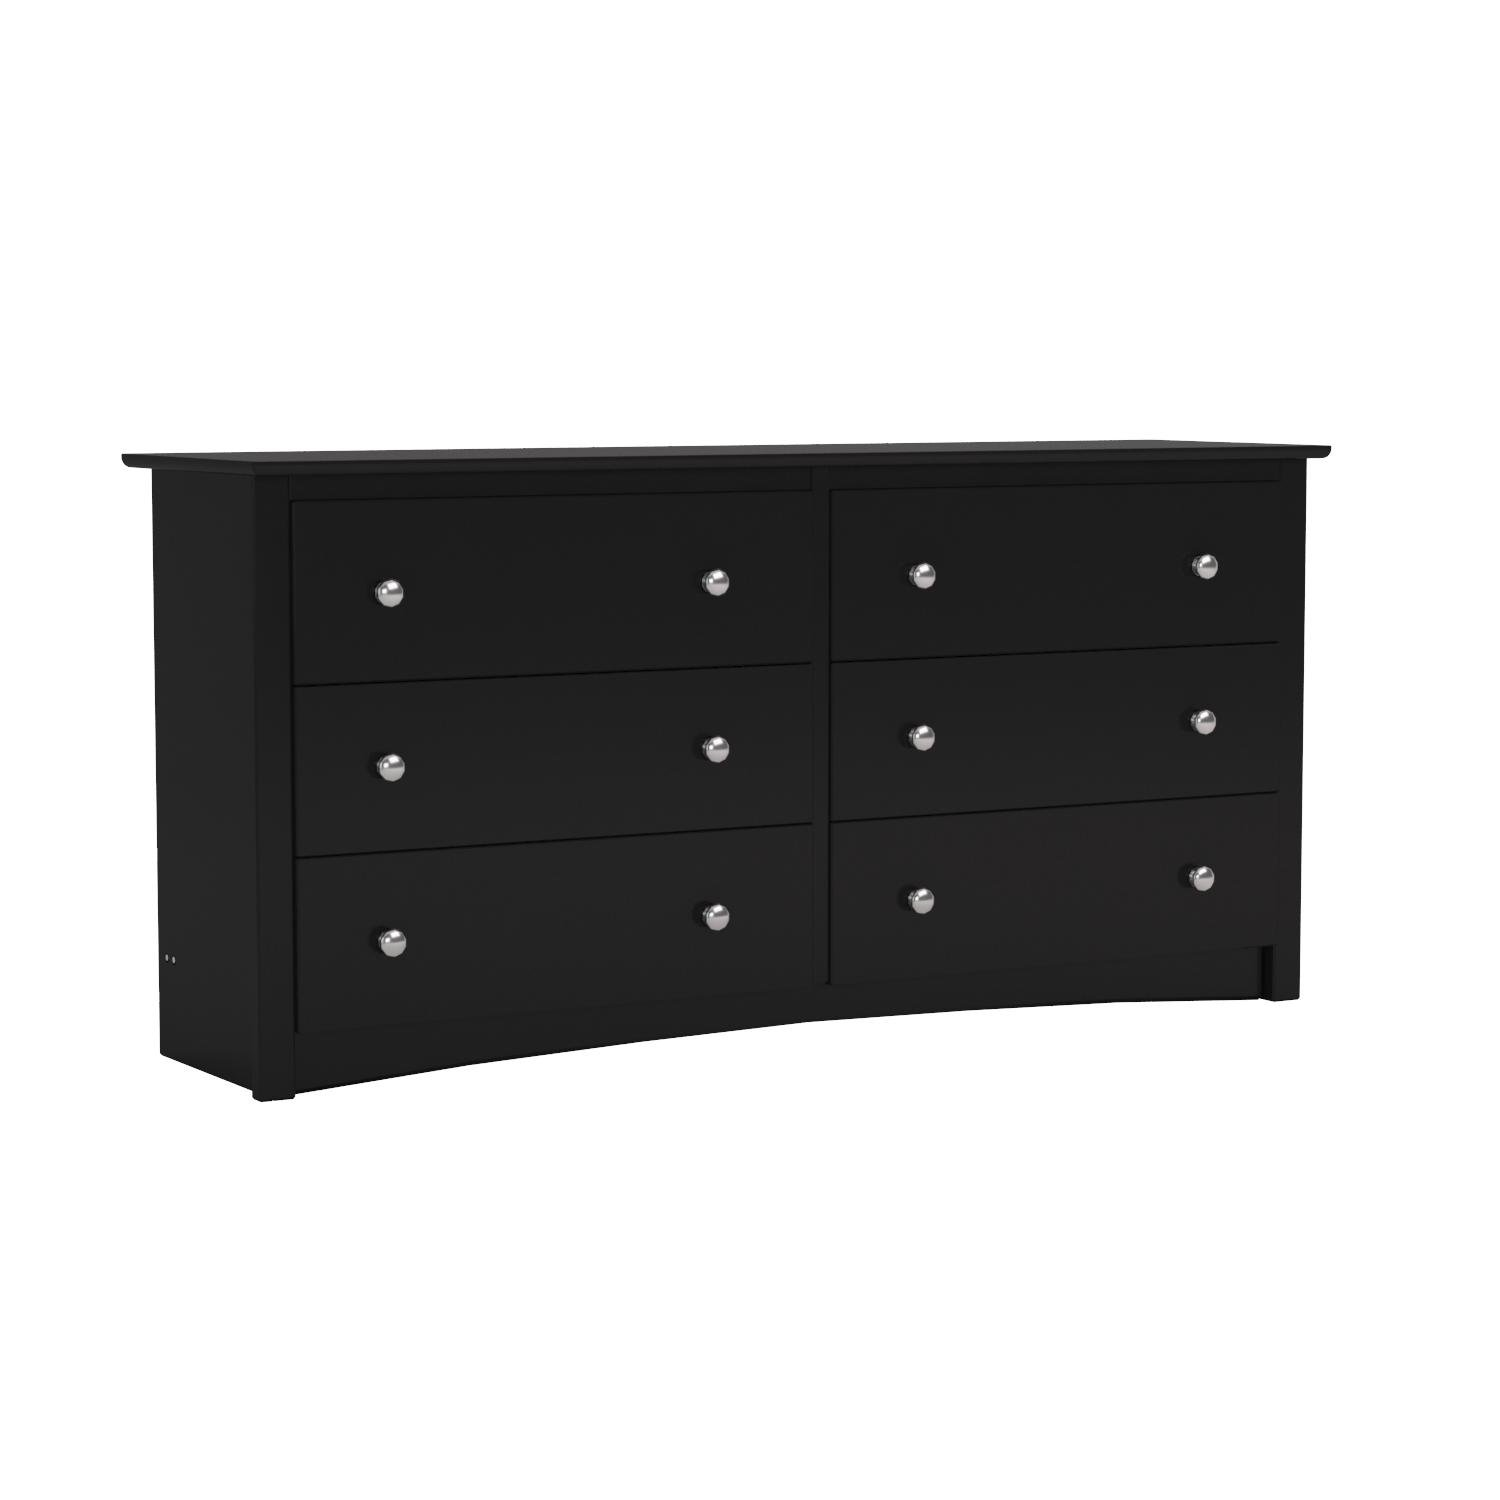 Black Sonoma 6 Drawer Dresser by Prepac